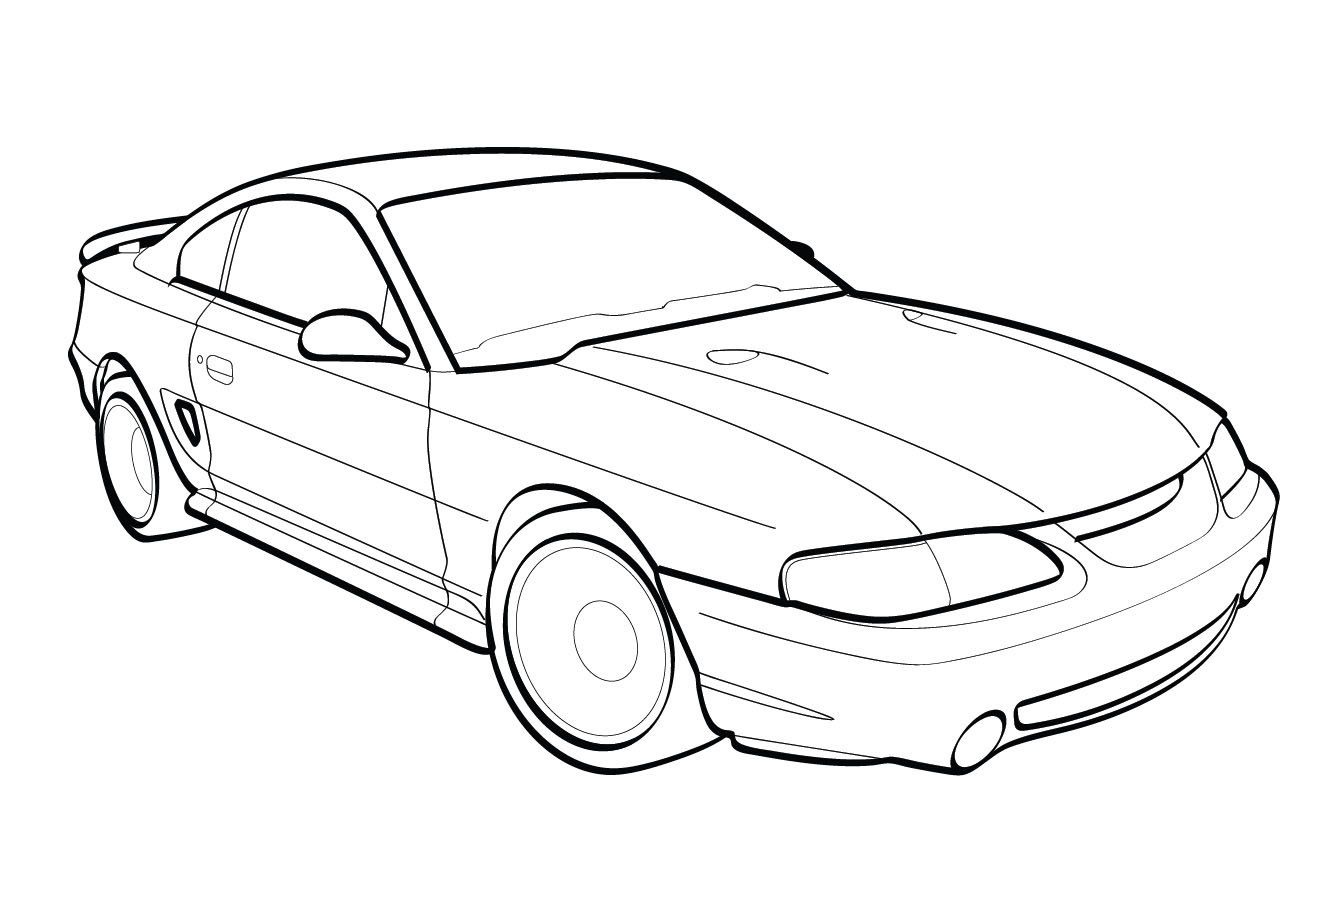 Fuse Diagram For Ford Mustang Html